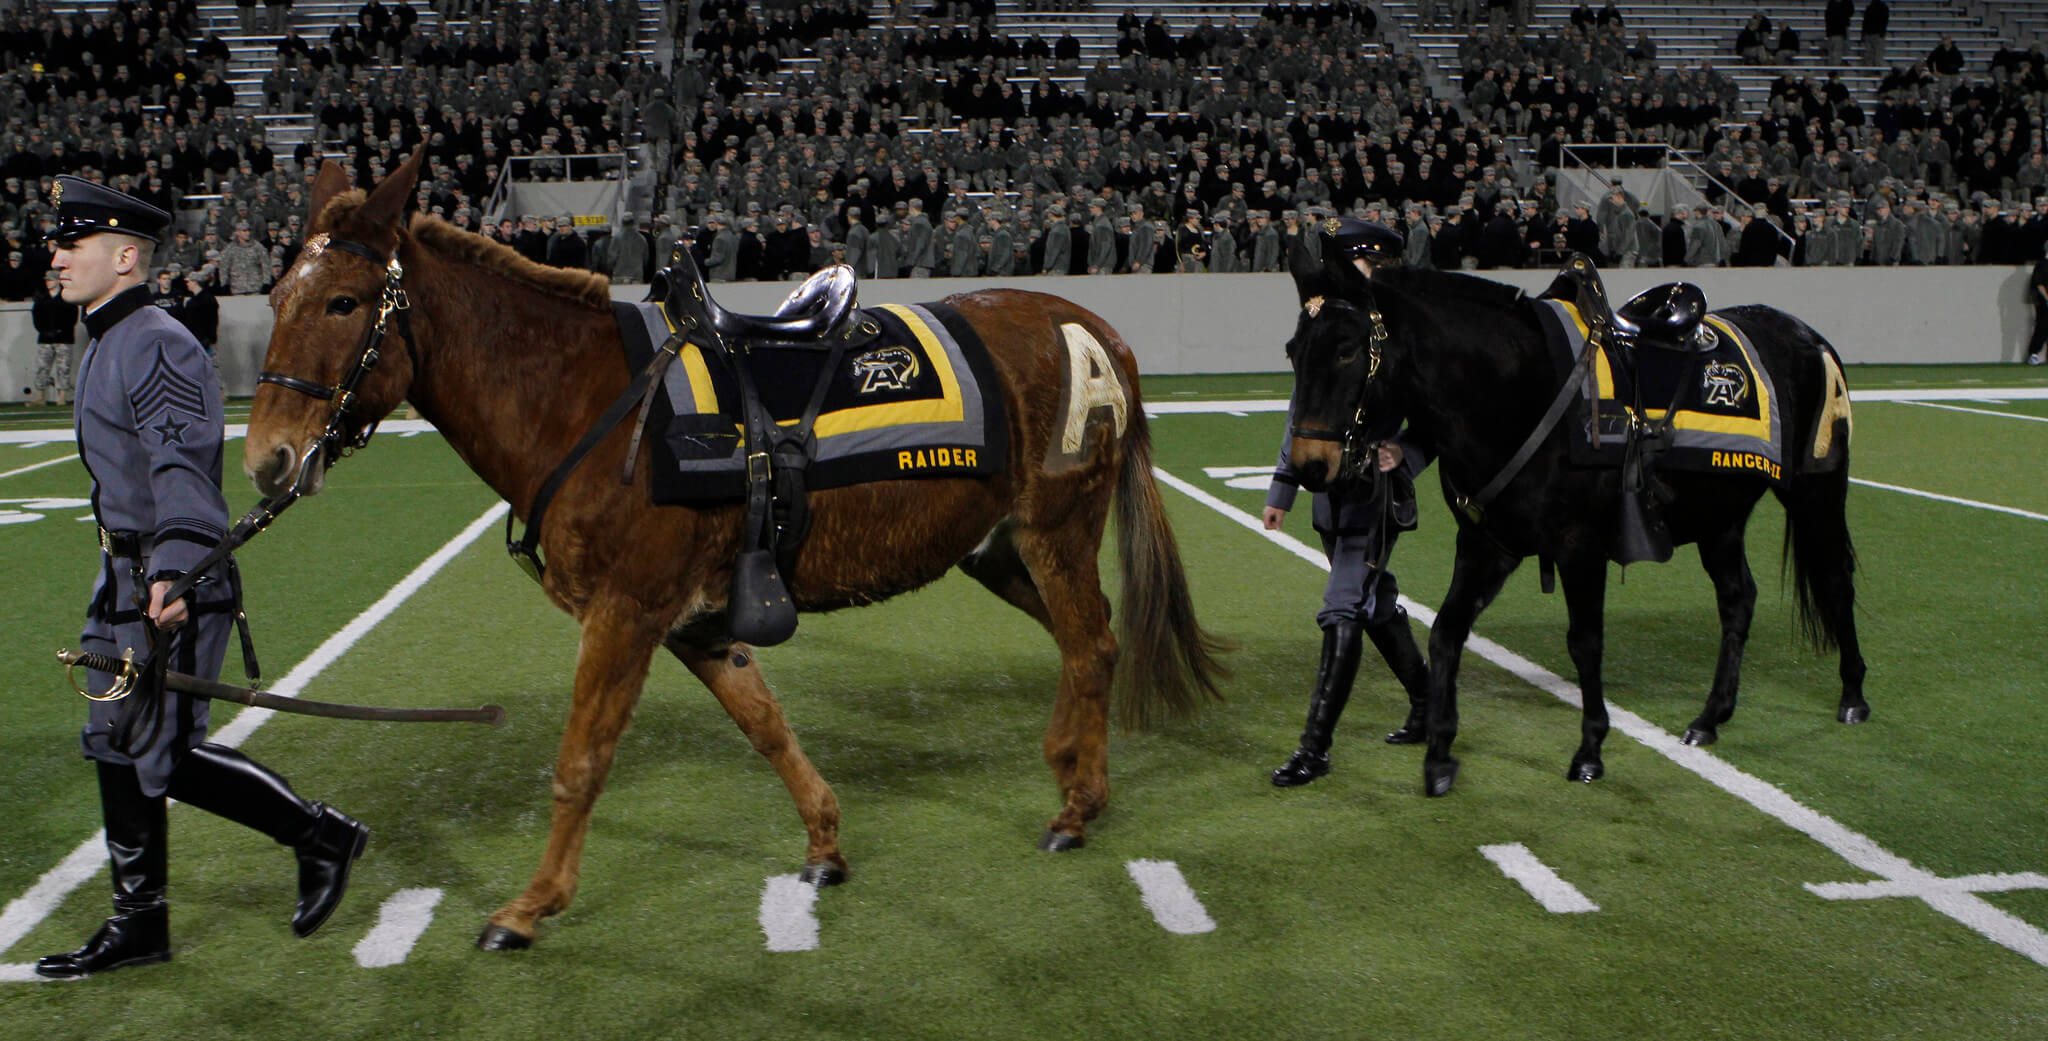 Ranger III and Stryker Army Black Knights live mascots